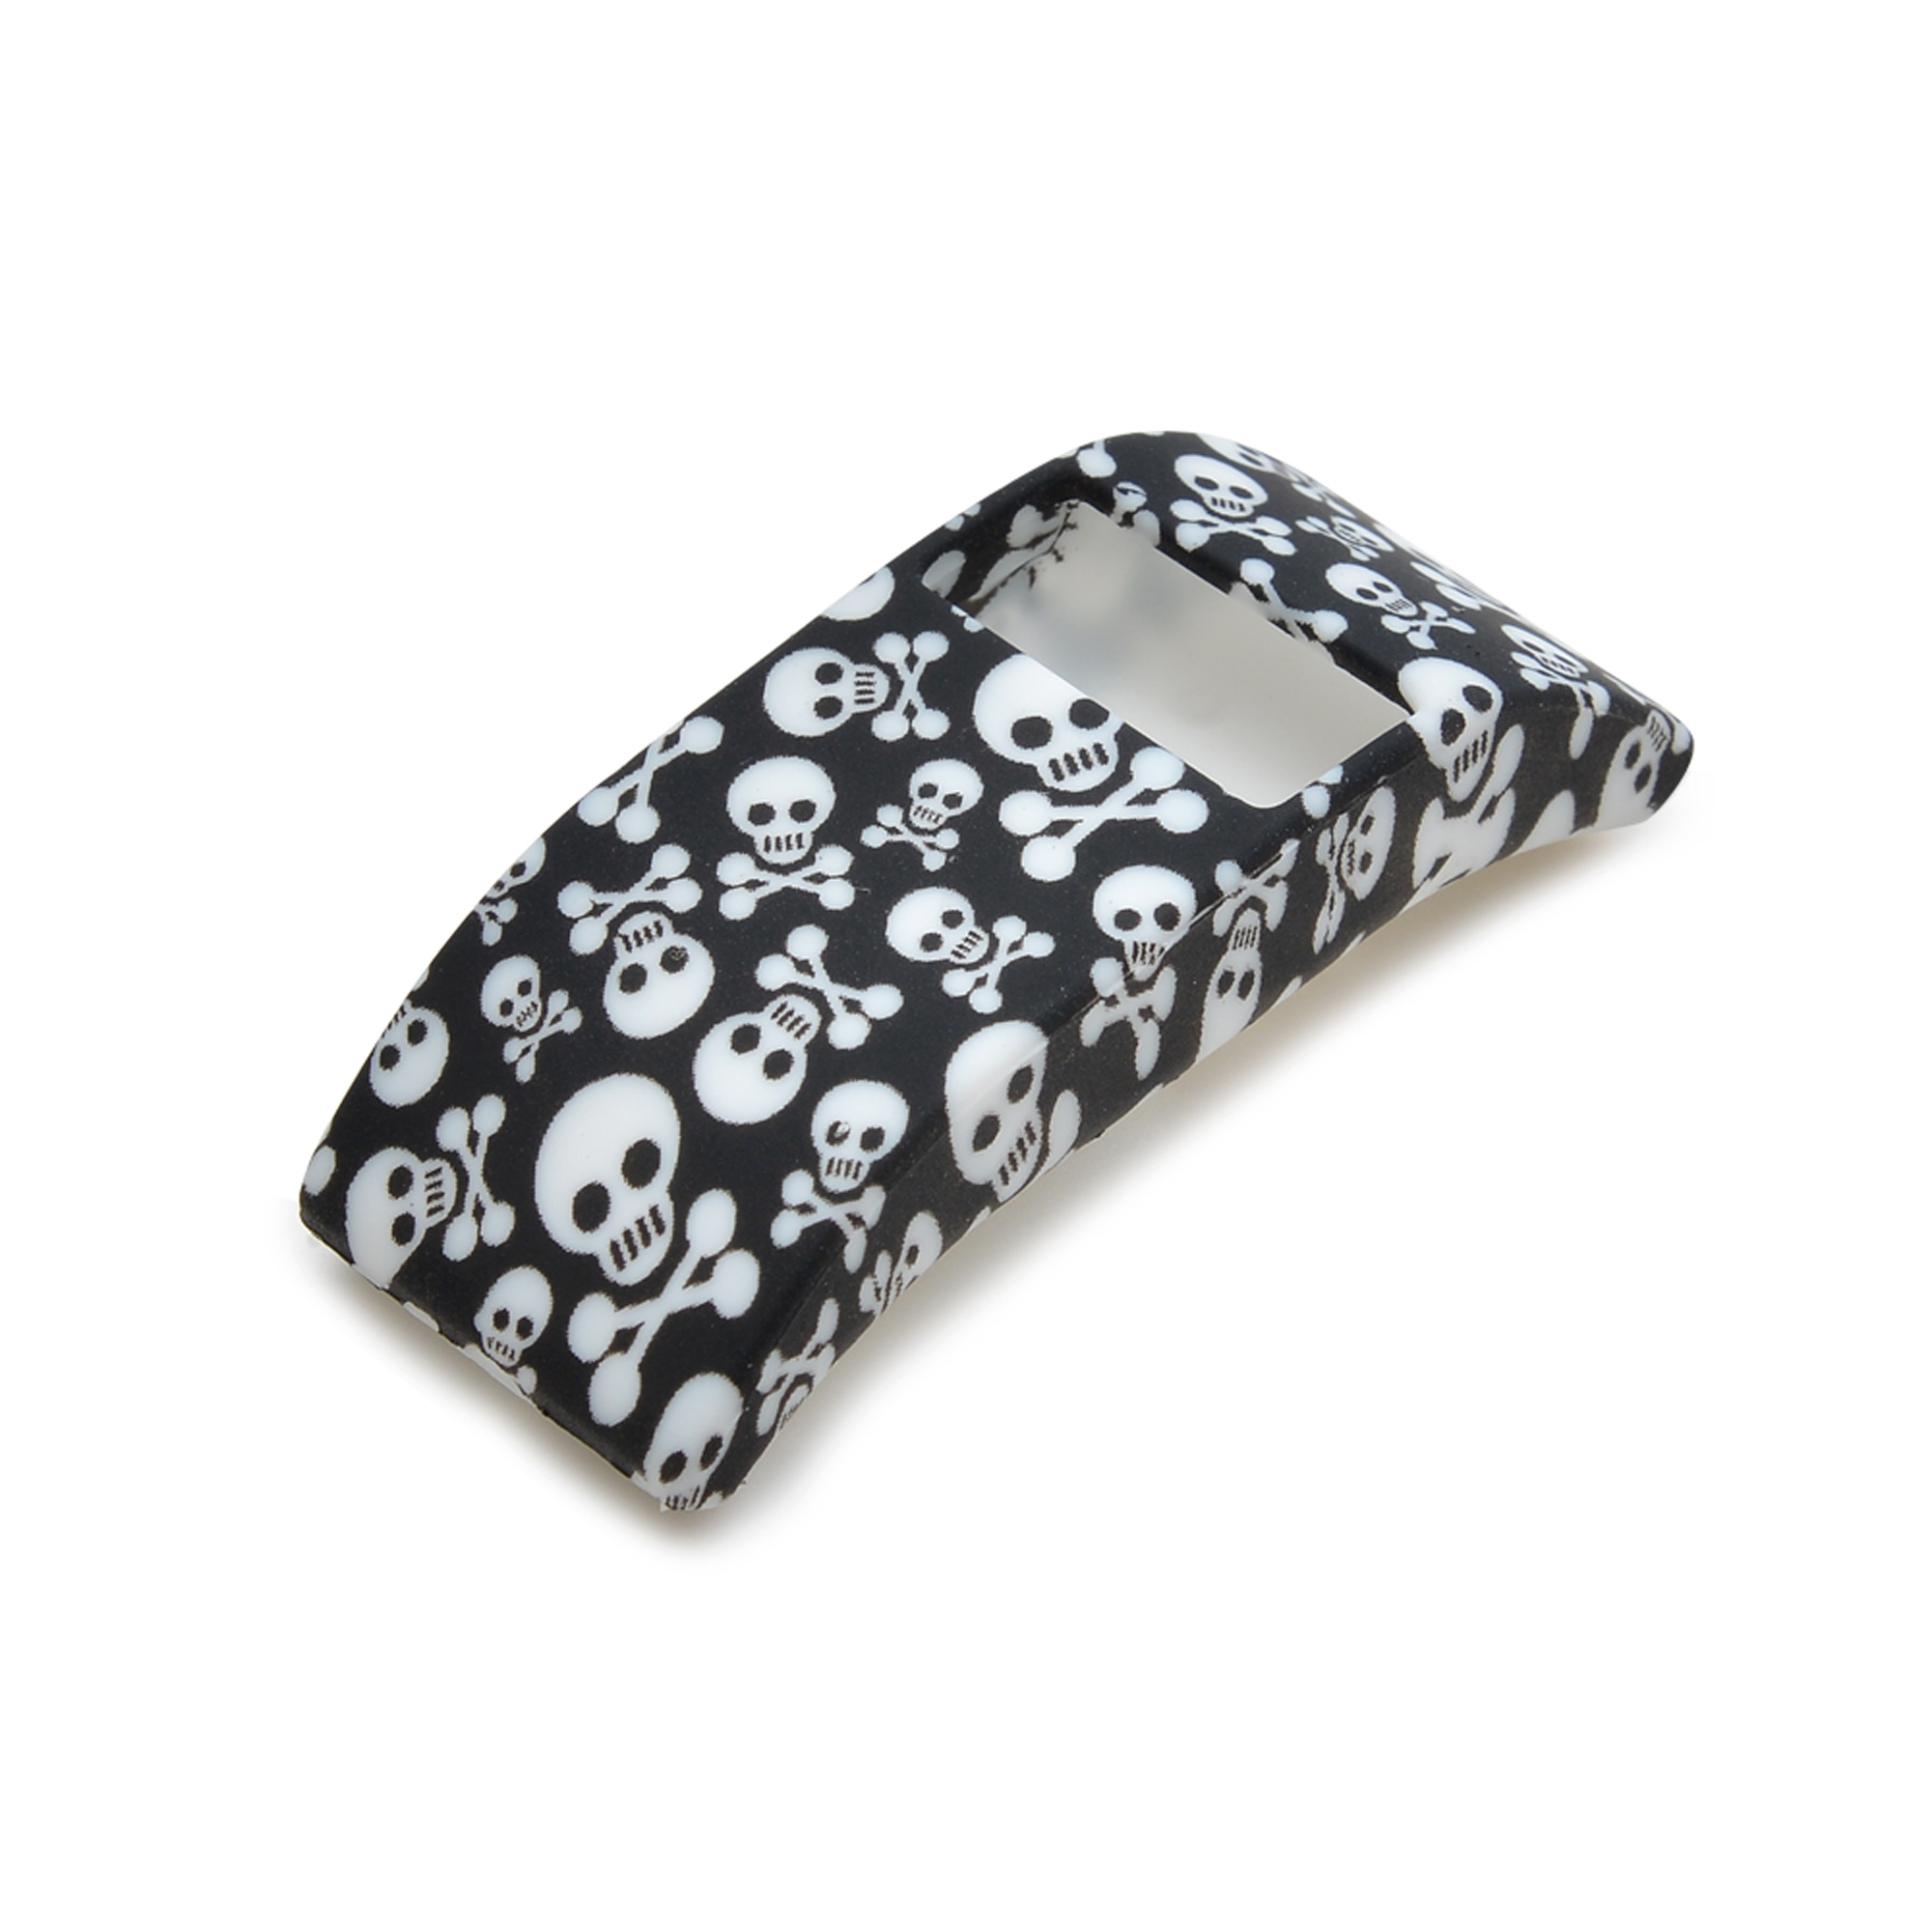 Sports Soft Silicone Rubber Band Case Cover Protective Sleeve for Fitbit Charge/ Fitbit Charge HR